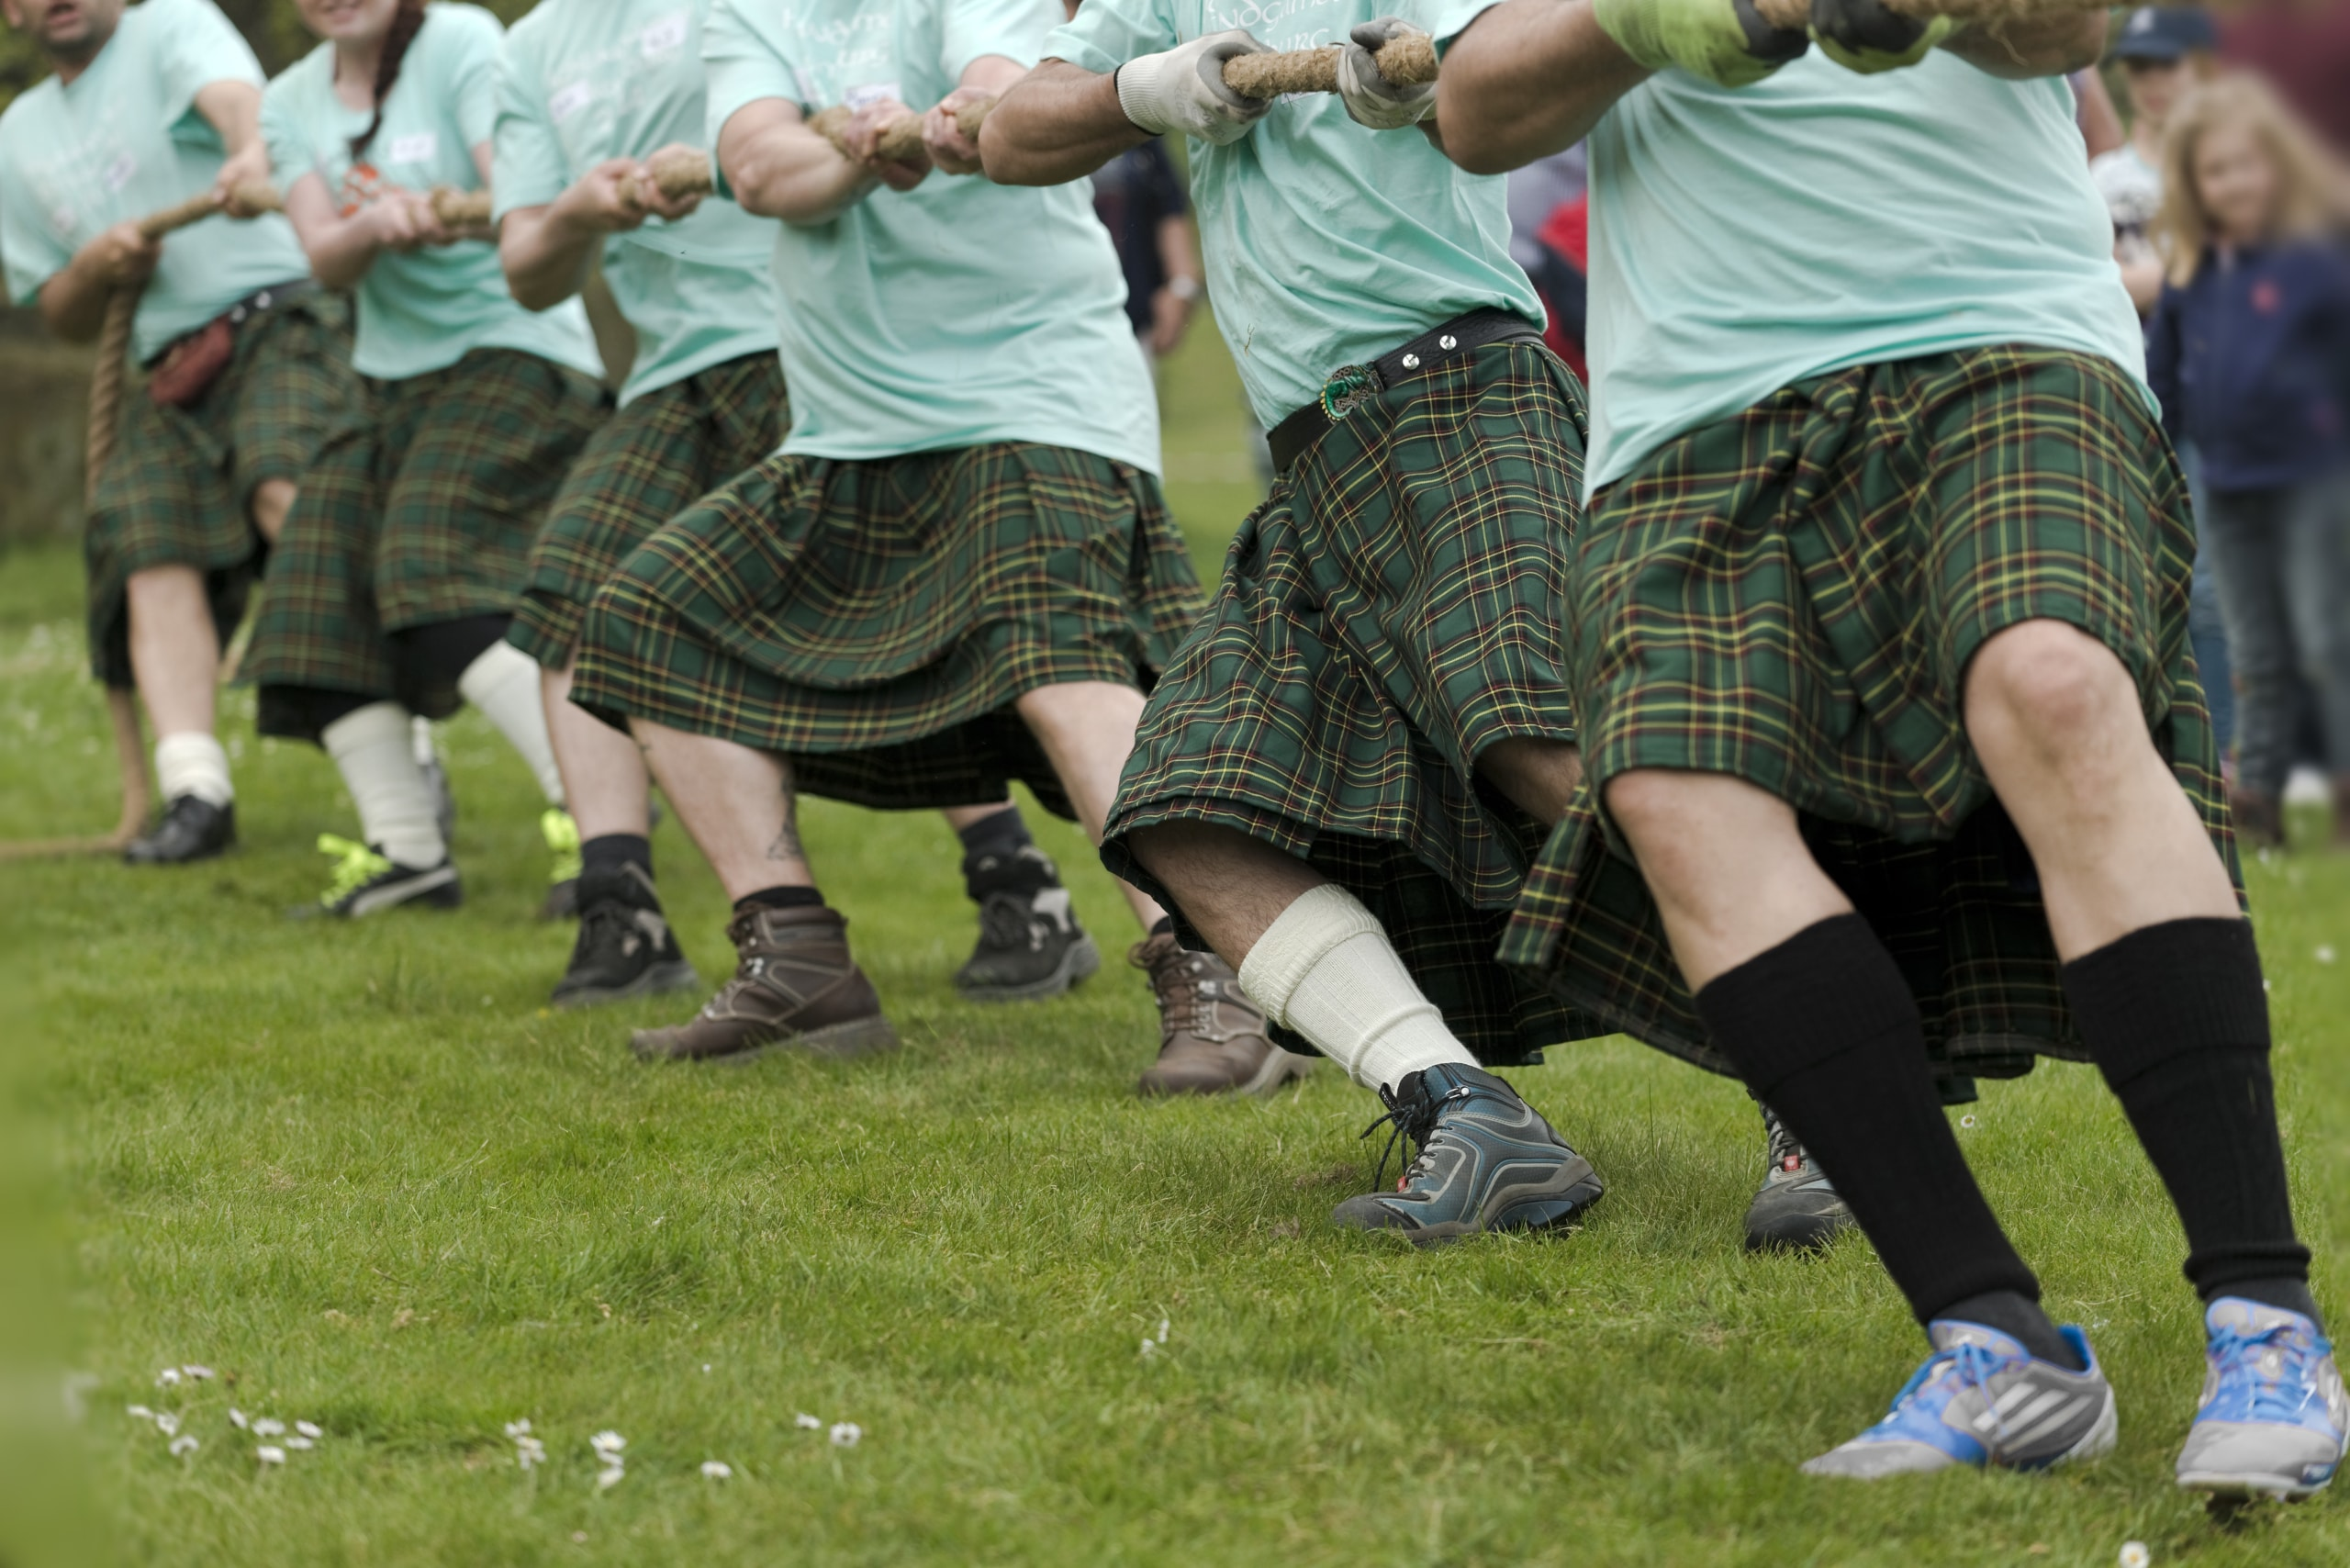 Tug of war at a Highland Games